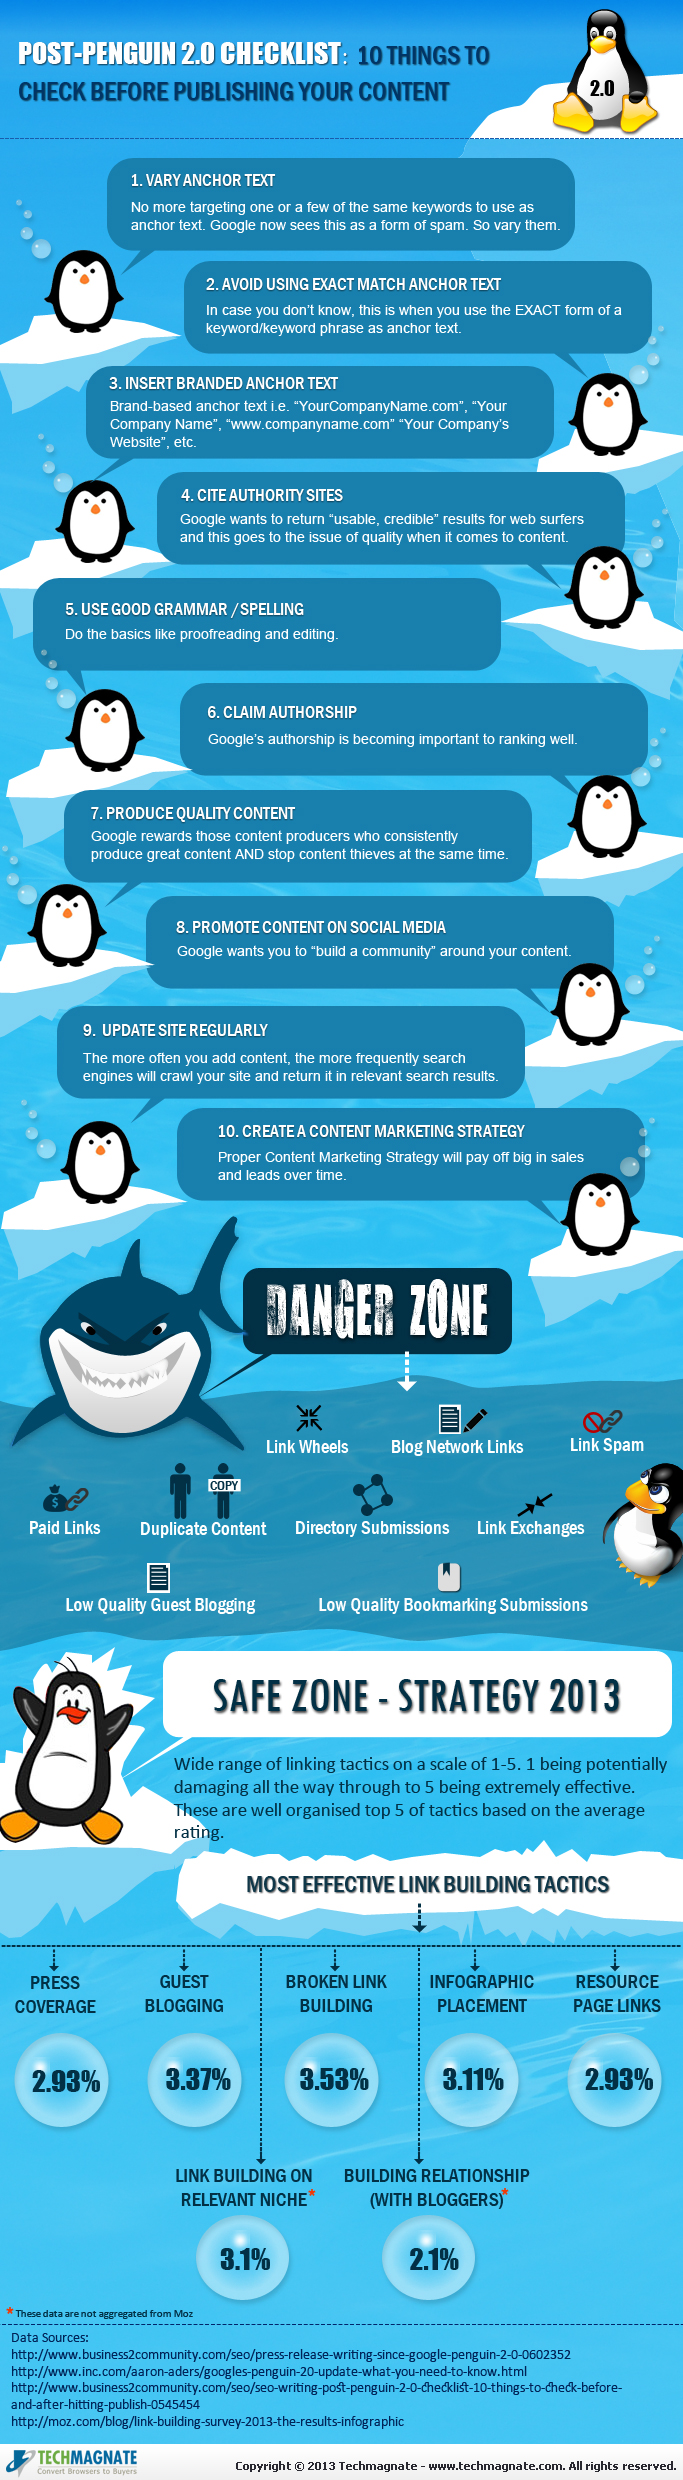 Post-Penguin 2.0 Checklist: 10 Things to Check Before Publishing Content